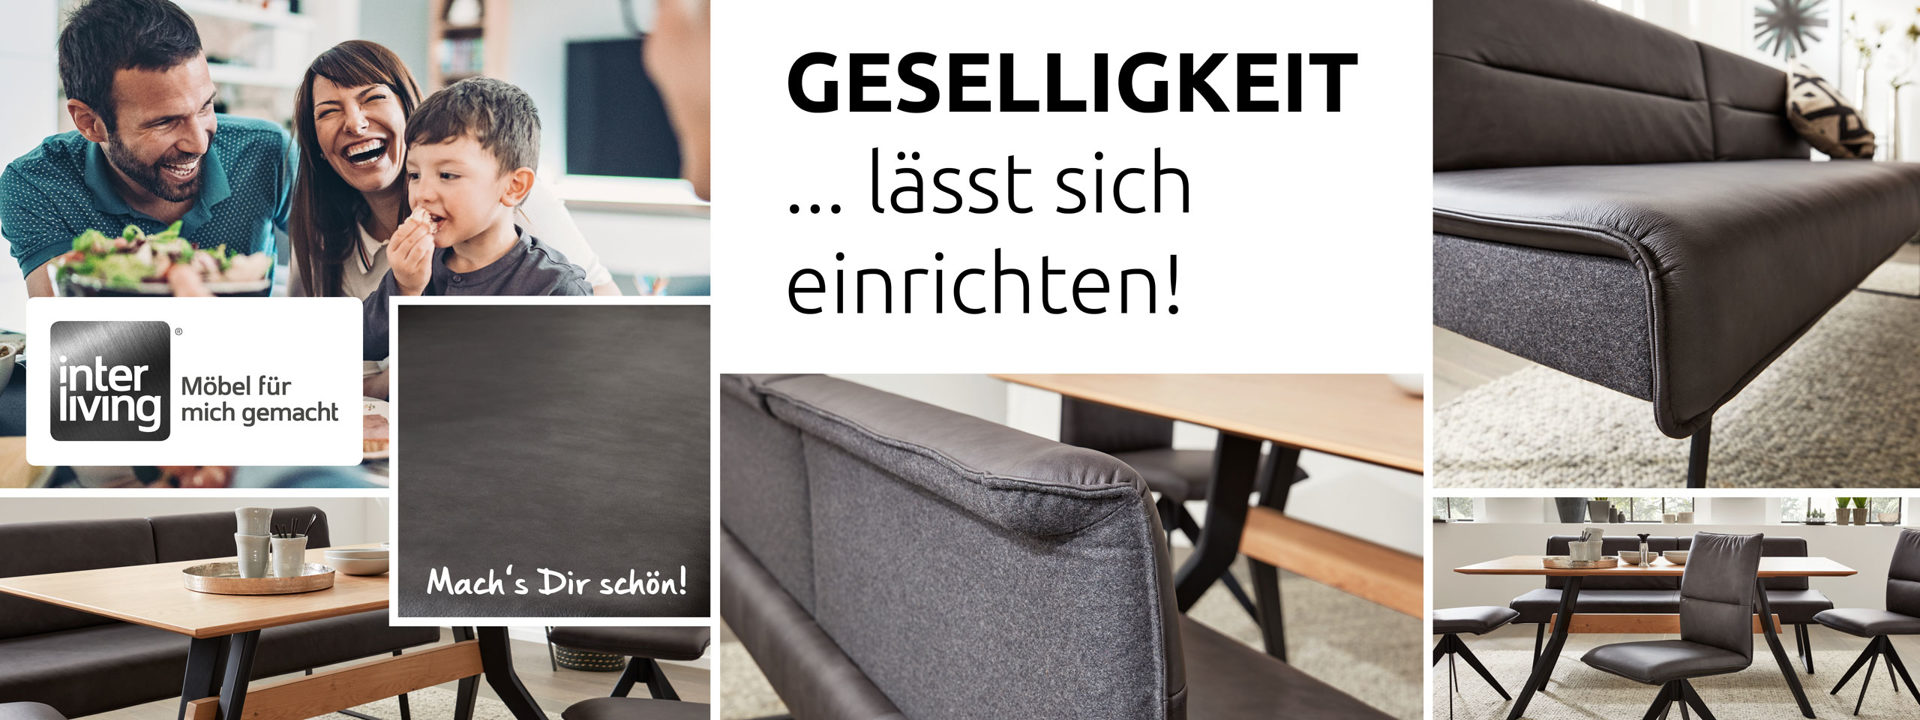 Interliving Esszimmer 5502 Zuhause Kampagne Geselligkeit HF Highlight 16 6